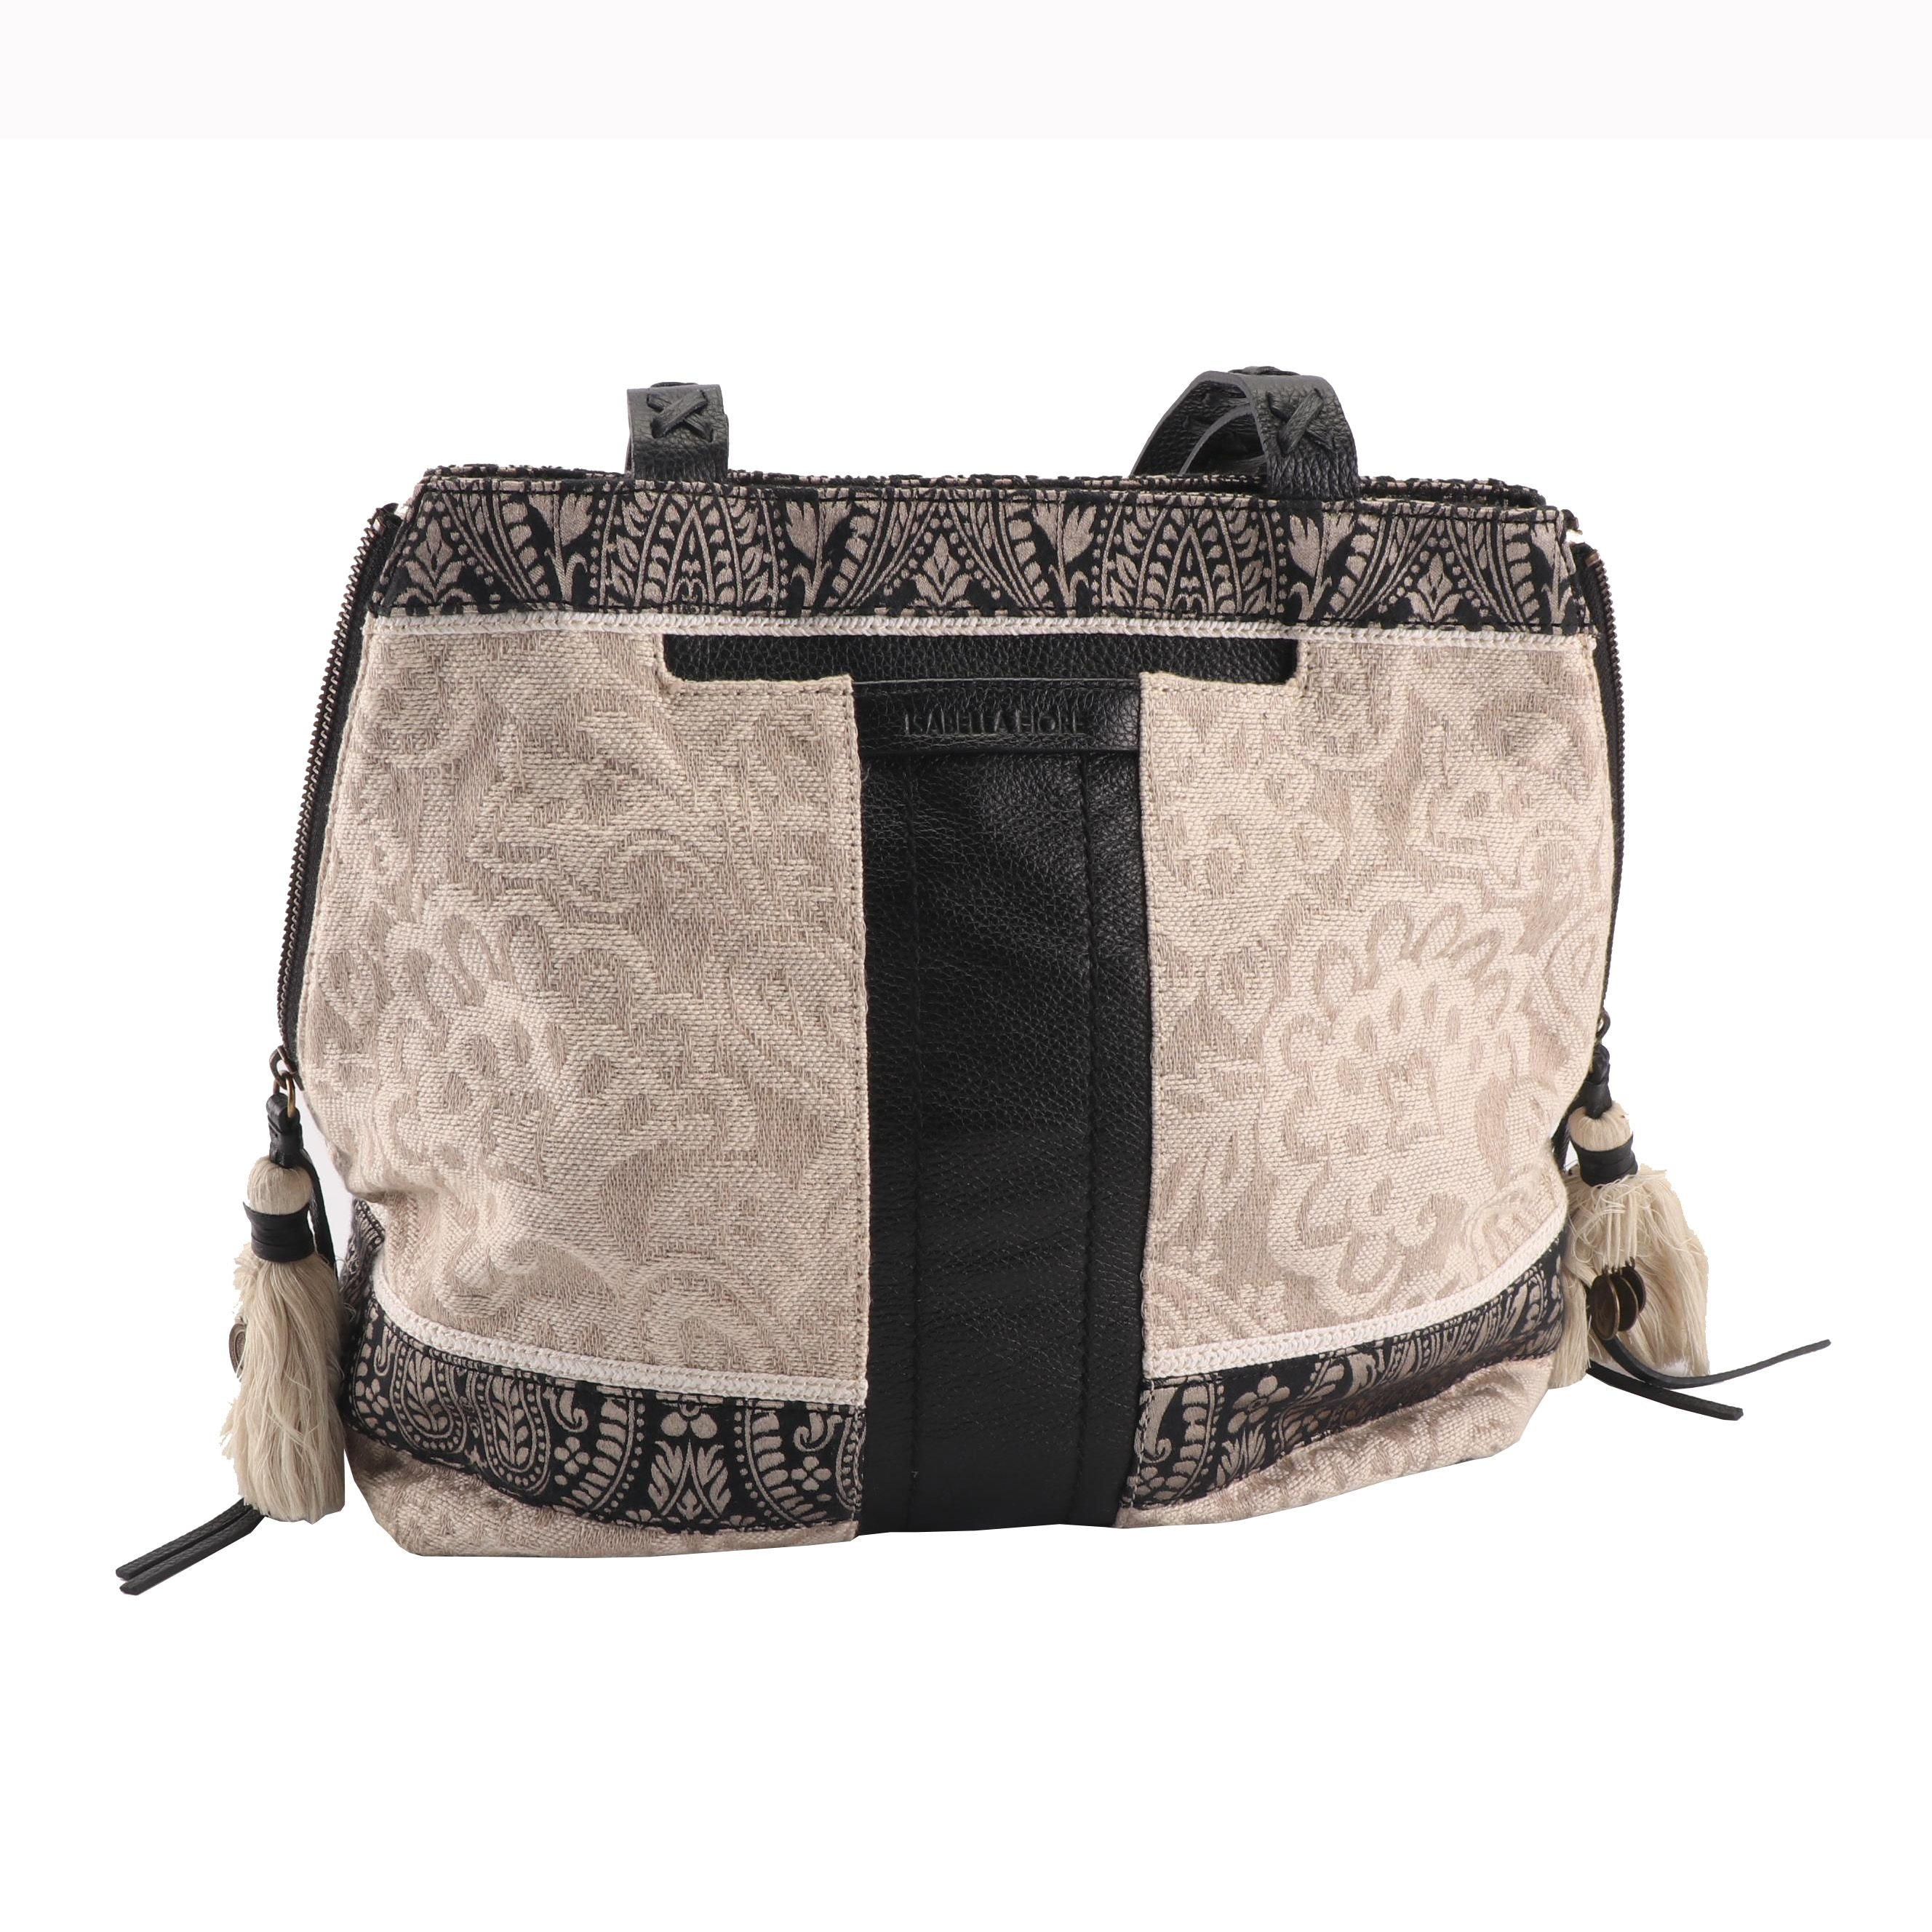 Isabella Fiore Jacquard Canvas and Black Pebbled Leather Shoulder Bag